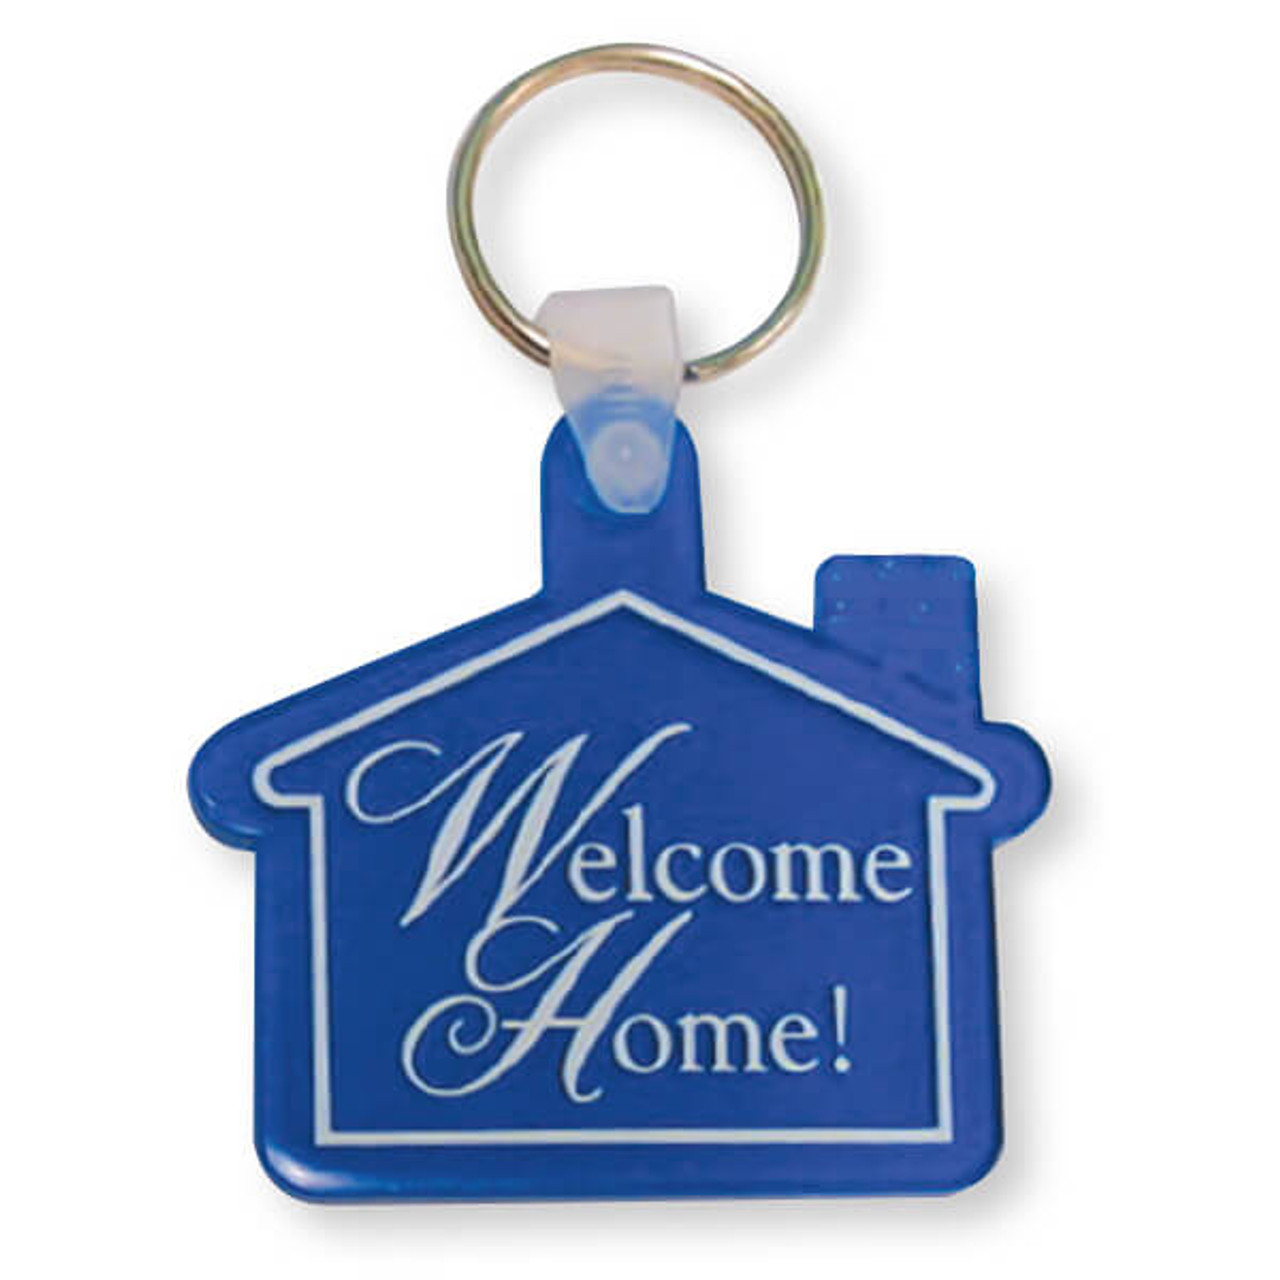 Welcome Home Keytag Translucent Blue w/White Imprint